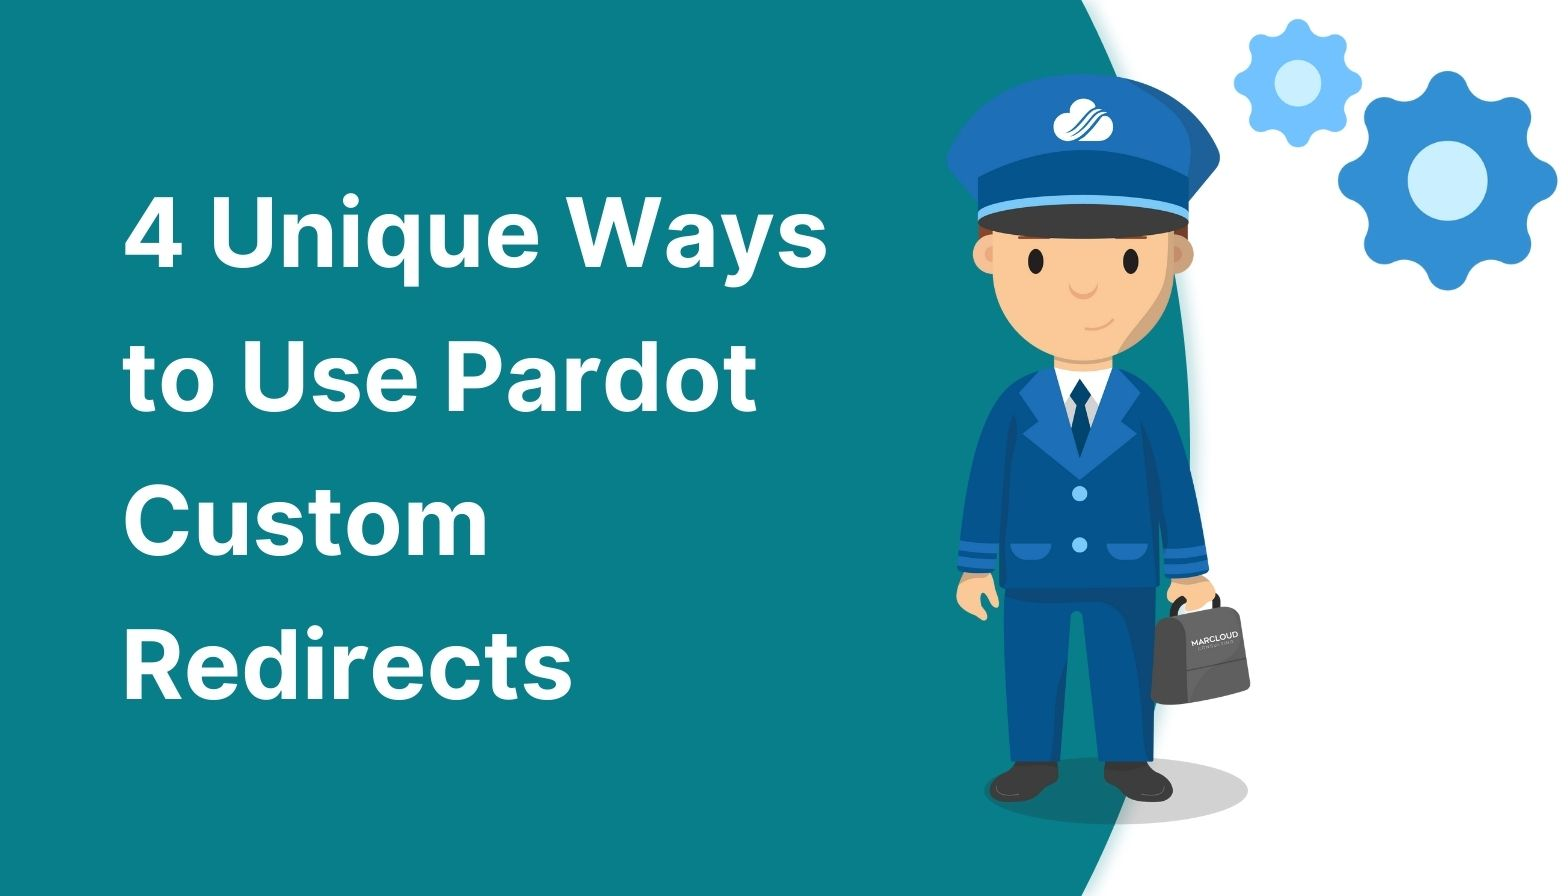 Feature image: 4 unique ways to use Pardot custom redirects